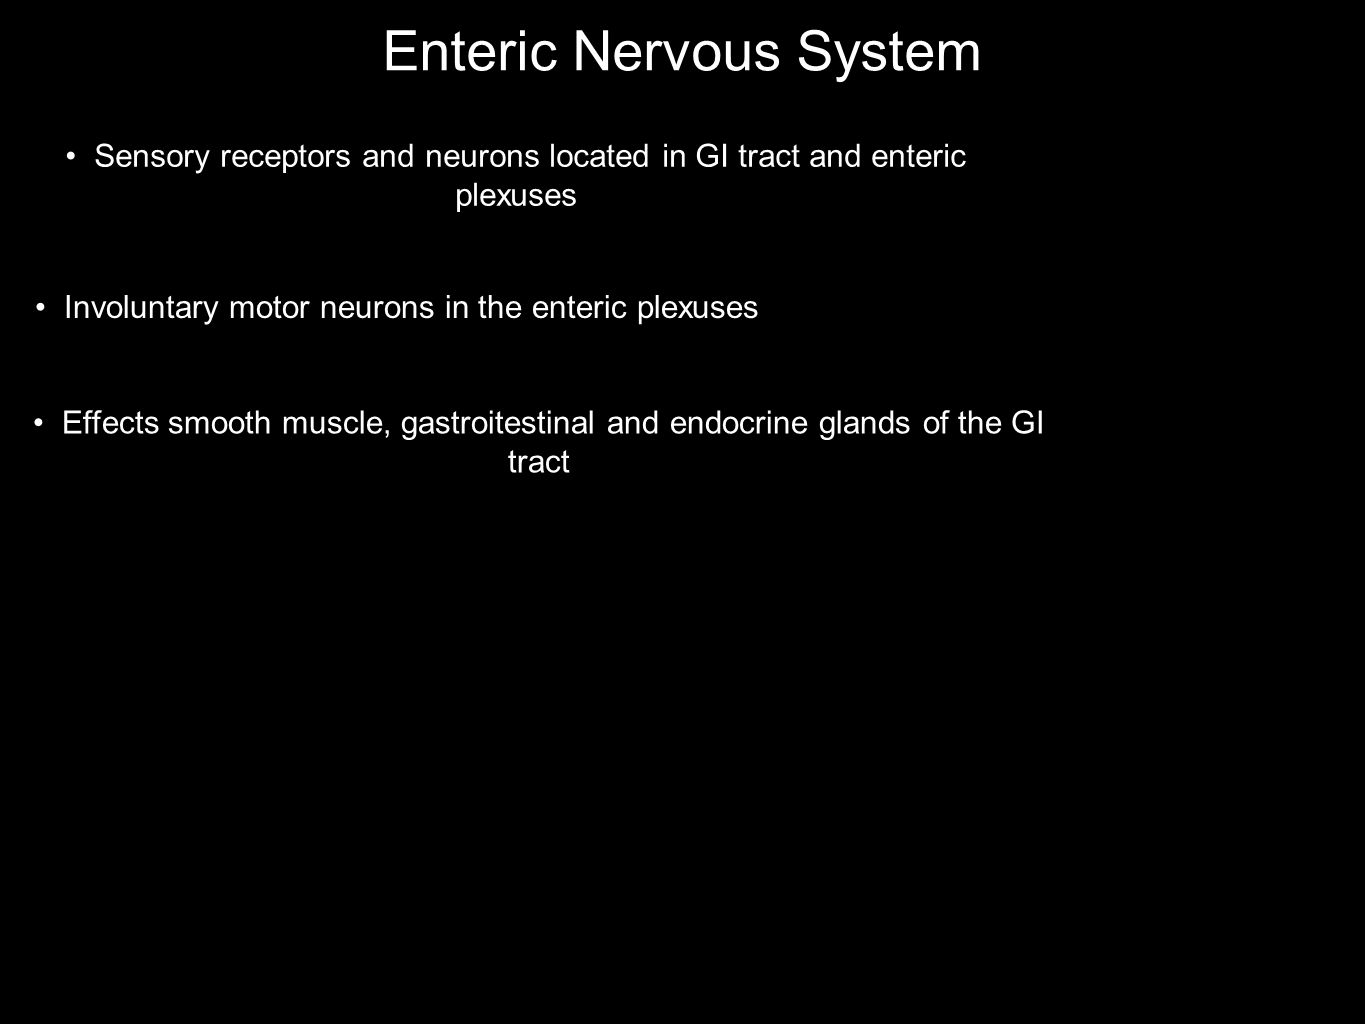 Enteric Nervous System Sensory receptors and neurons located in GI tract and enteric plexuses Involuntary motor neurons in the enteric plexuses Effect